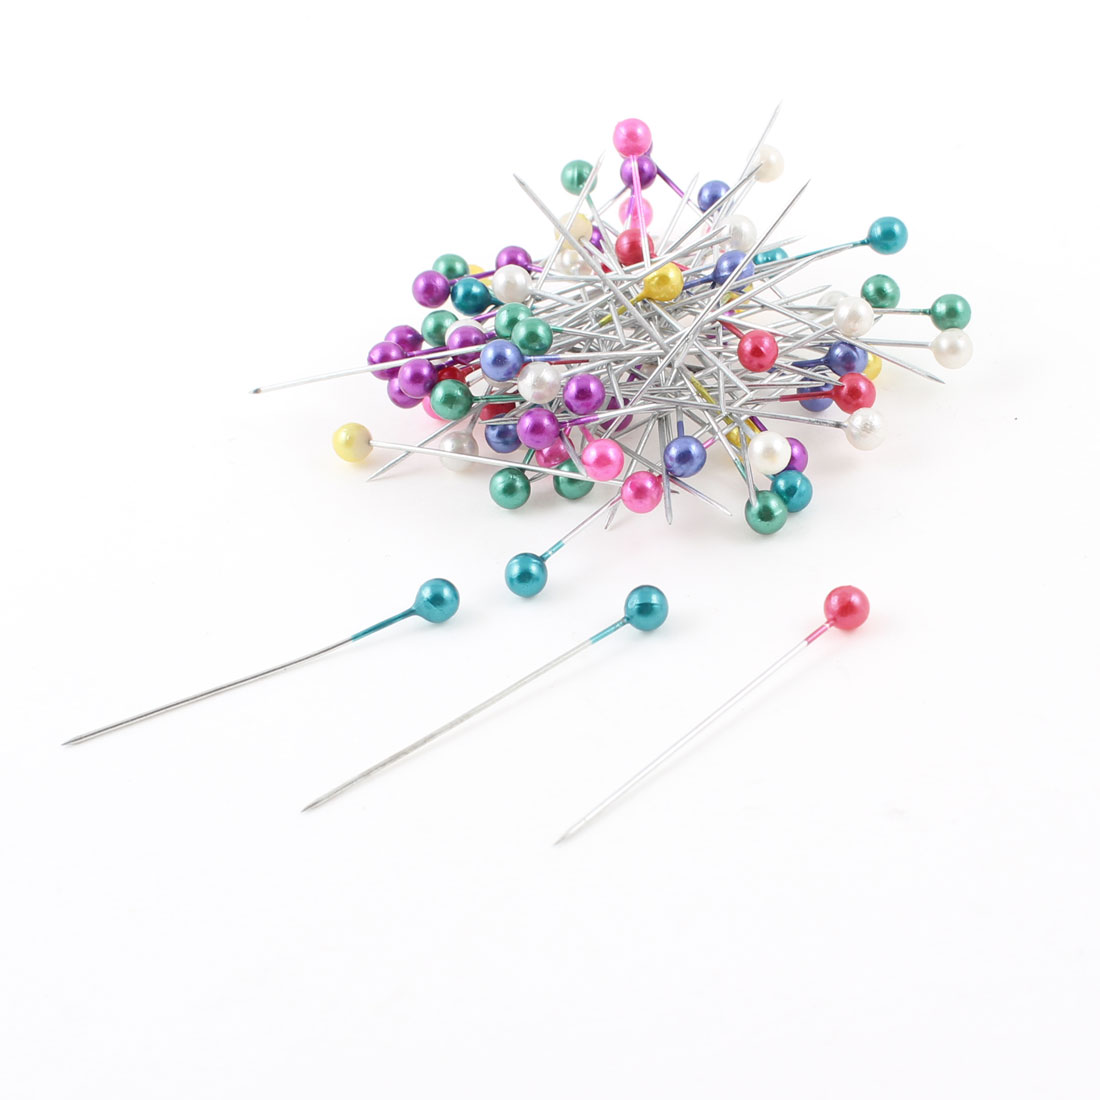 80 Pcs Assorted Color Decorative Faux Beads Straight Head Pins